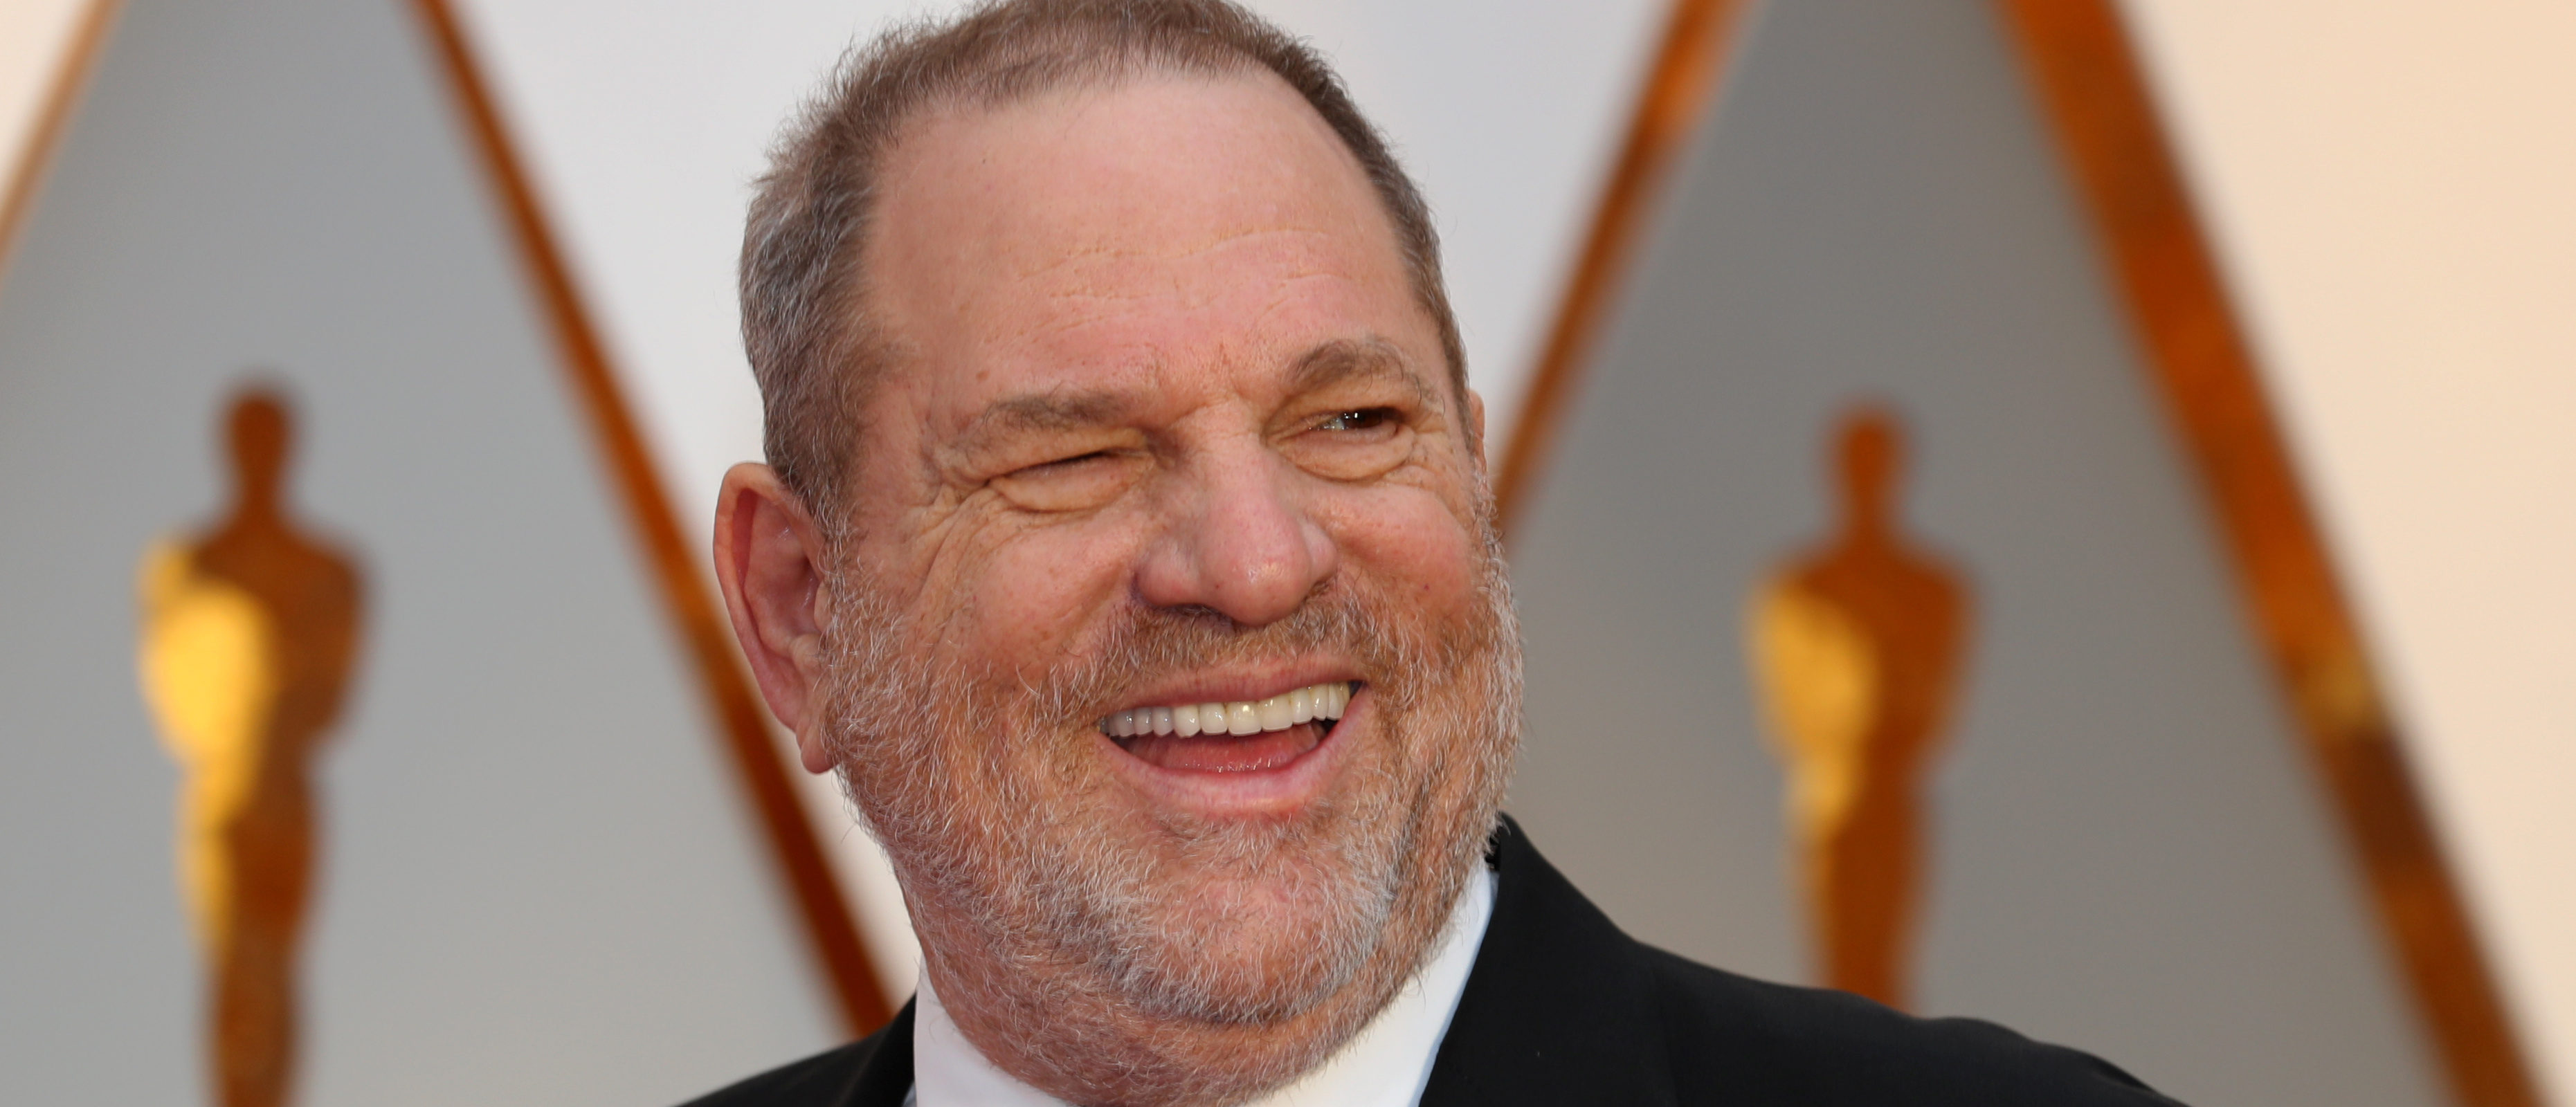 Harvey Weinstein arrives at the 89th Academy Awards in Hollywood, California, U.S. February 26, 2017. Picture taken February 26, 2017. REUTERS/Mike Blake - RC11EAEA56A0